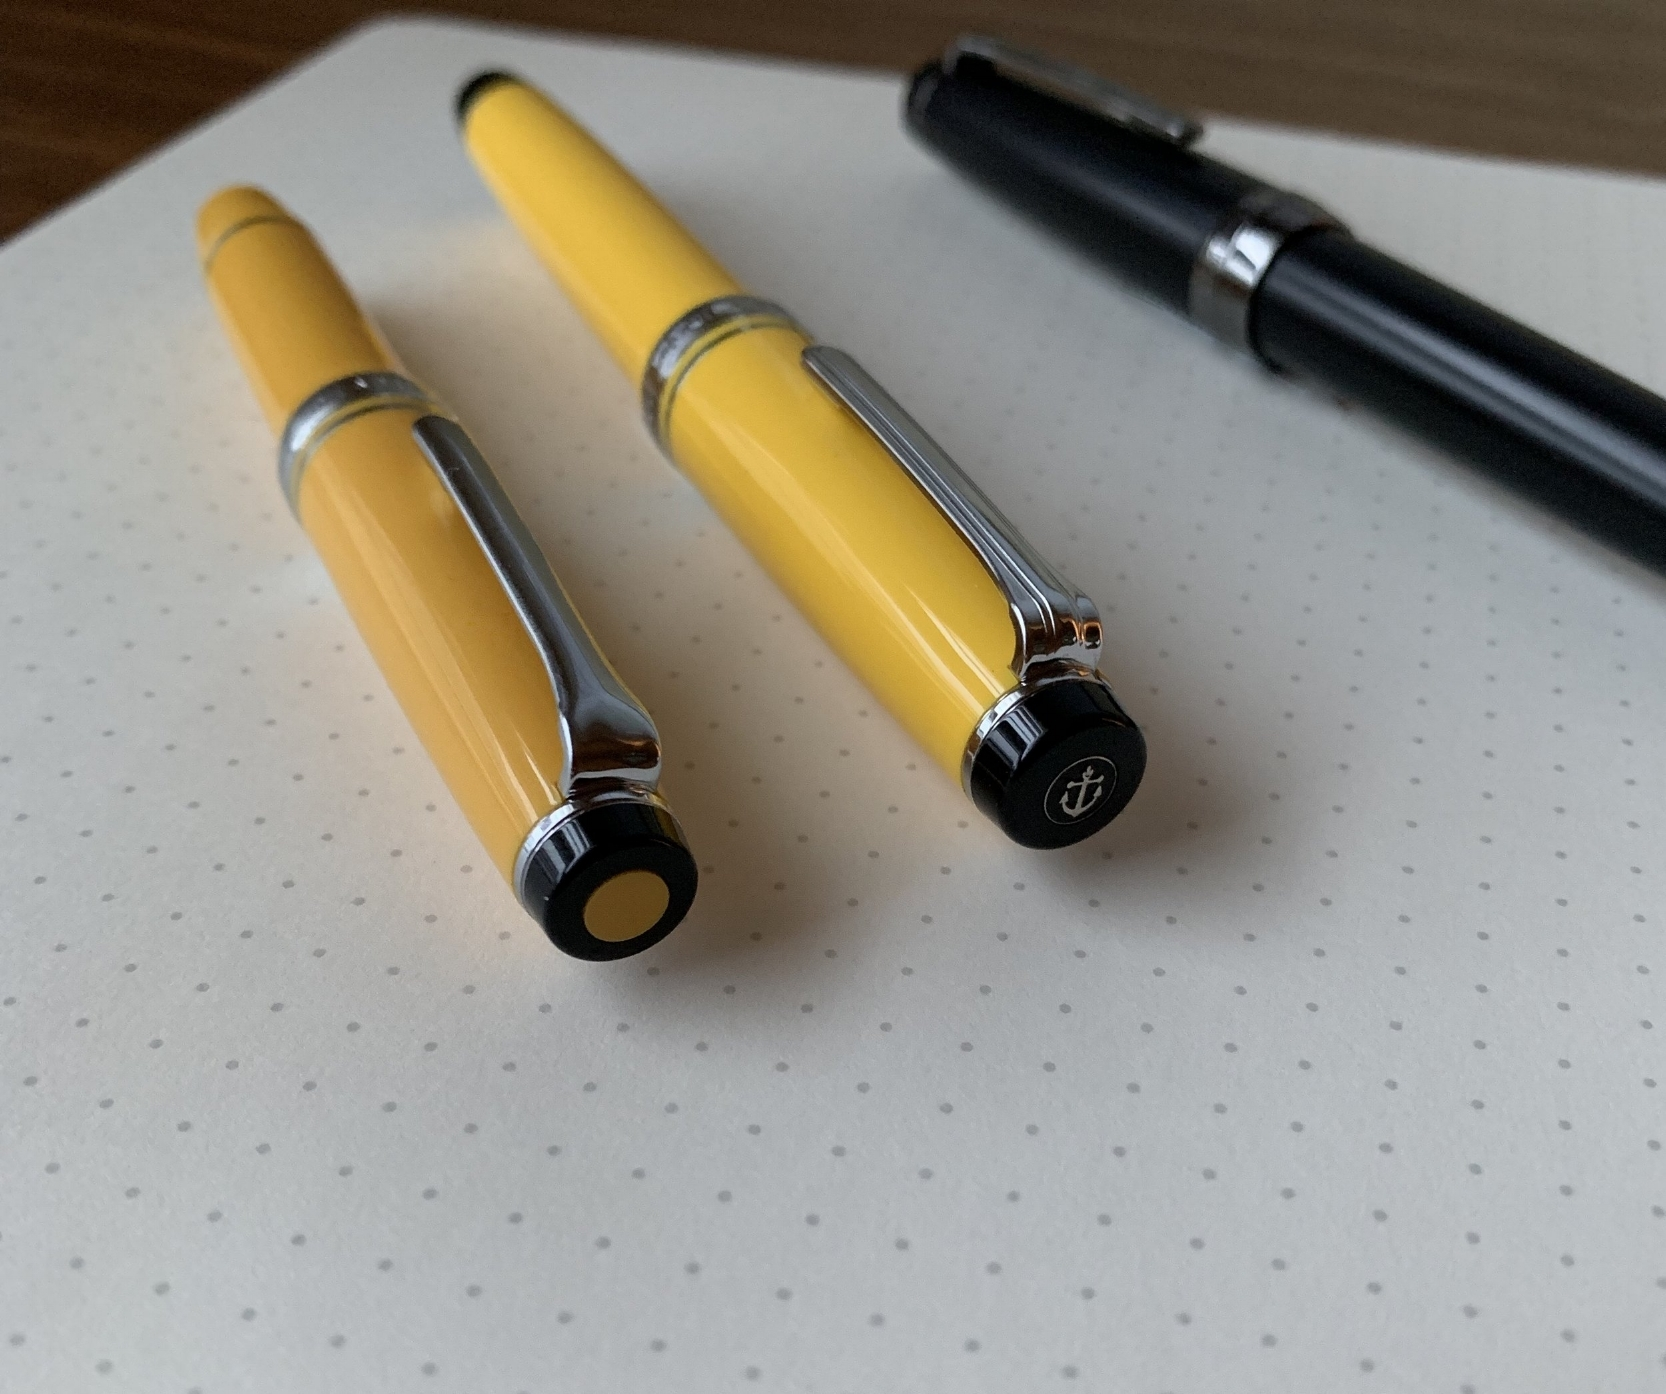 The Nagasawa cap finial (left) compared against the standard Sailor design (right). Note that the yellow used in the Sapporo Mini is a deeper, mustard yellow, which I prefer to the brighter yellow acrylic used on the Pro Gear Color.